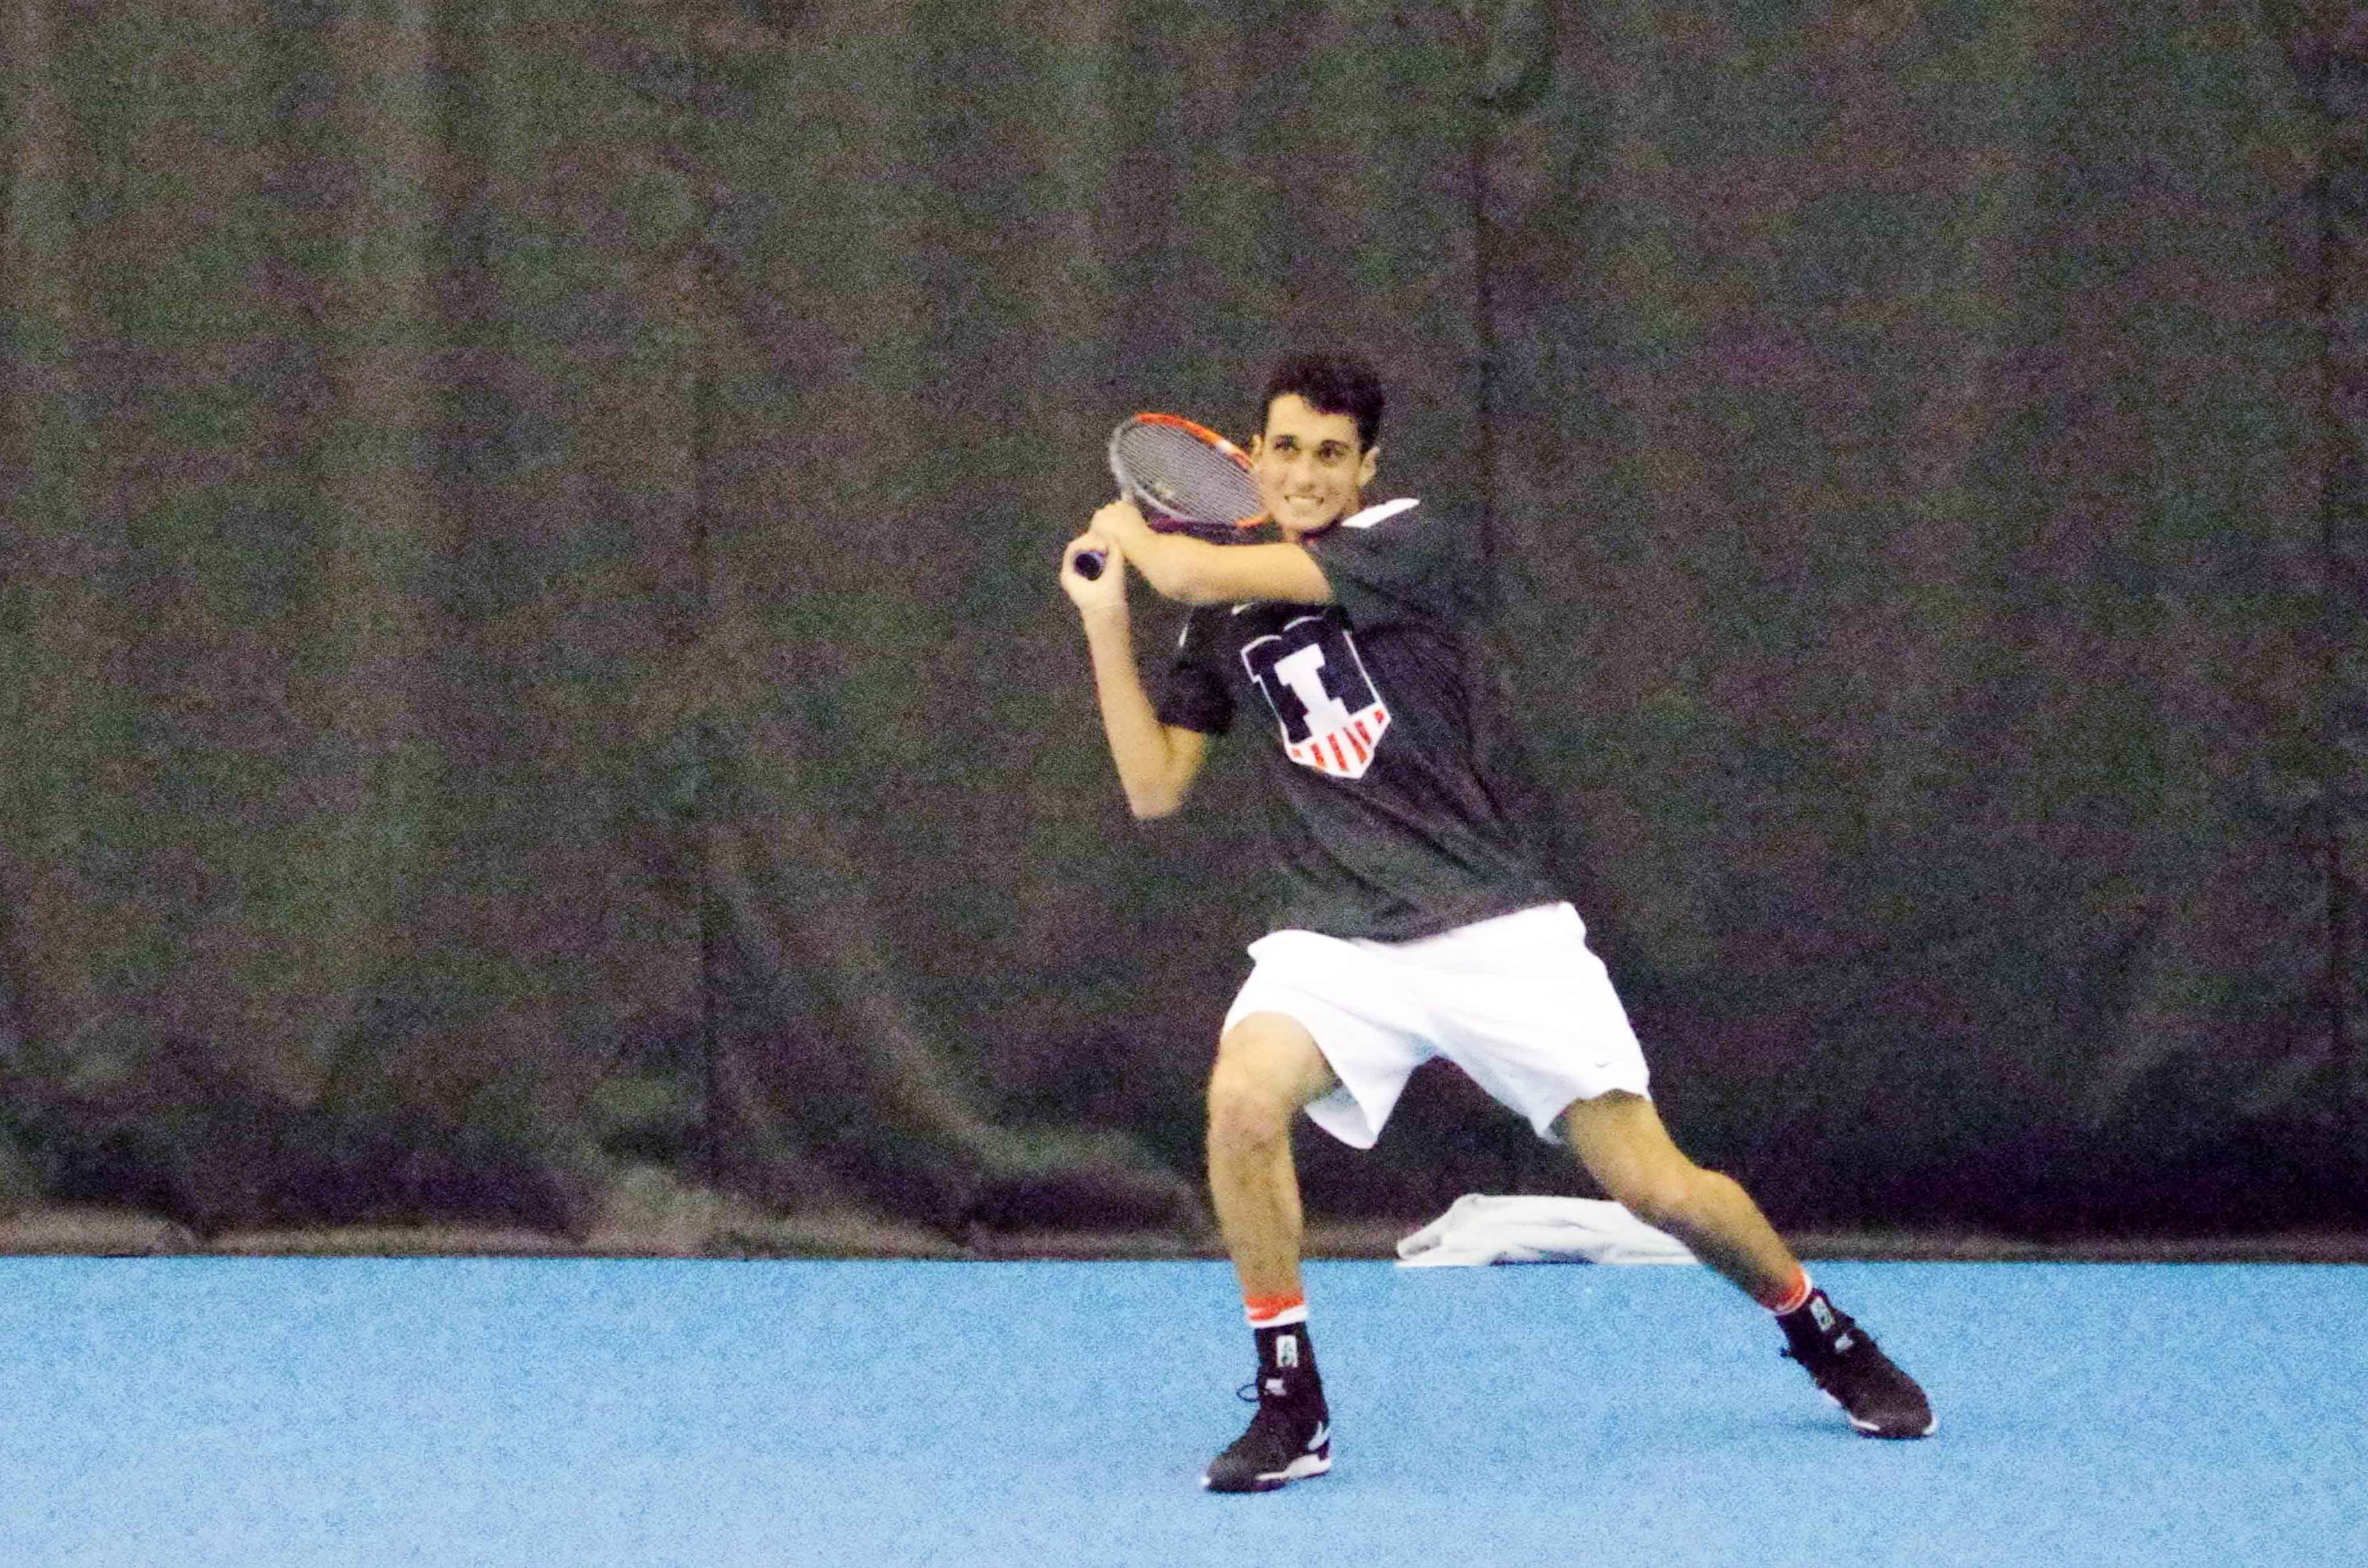 Illini's Gui Gomez plays against University of North Carolina at the Atkins Tennis Center on Friday, Fe. 4th.